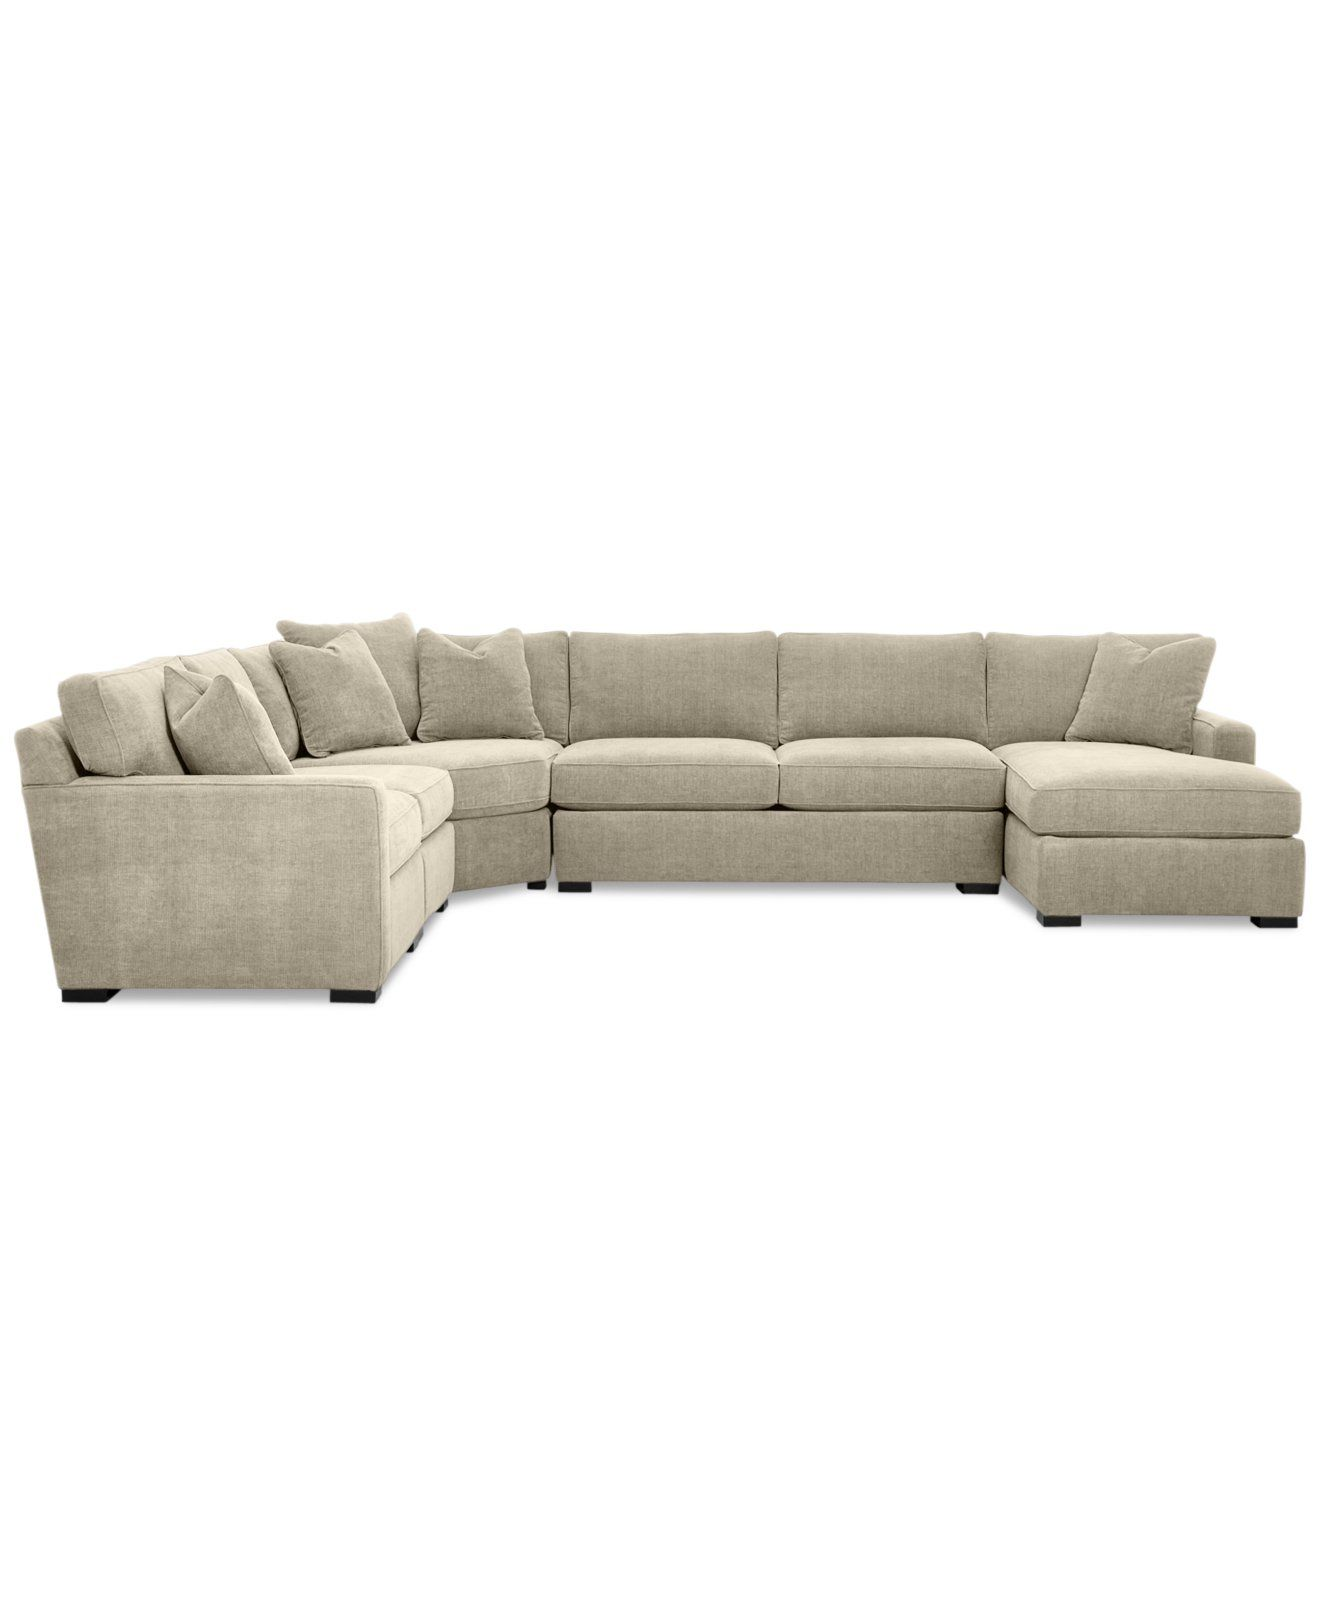 Furniture Radley 5 Piece Fabric Chaise Sectional Sofa Created For Macy S Reviews Furniture Macy S Sectional Sofas Living Room Fabric Sectional Sofas Sectional Sofa